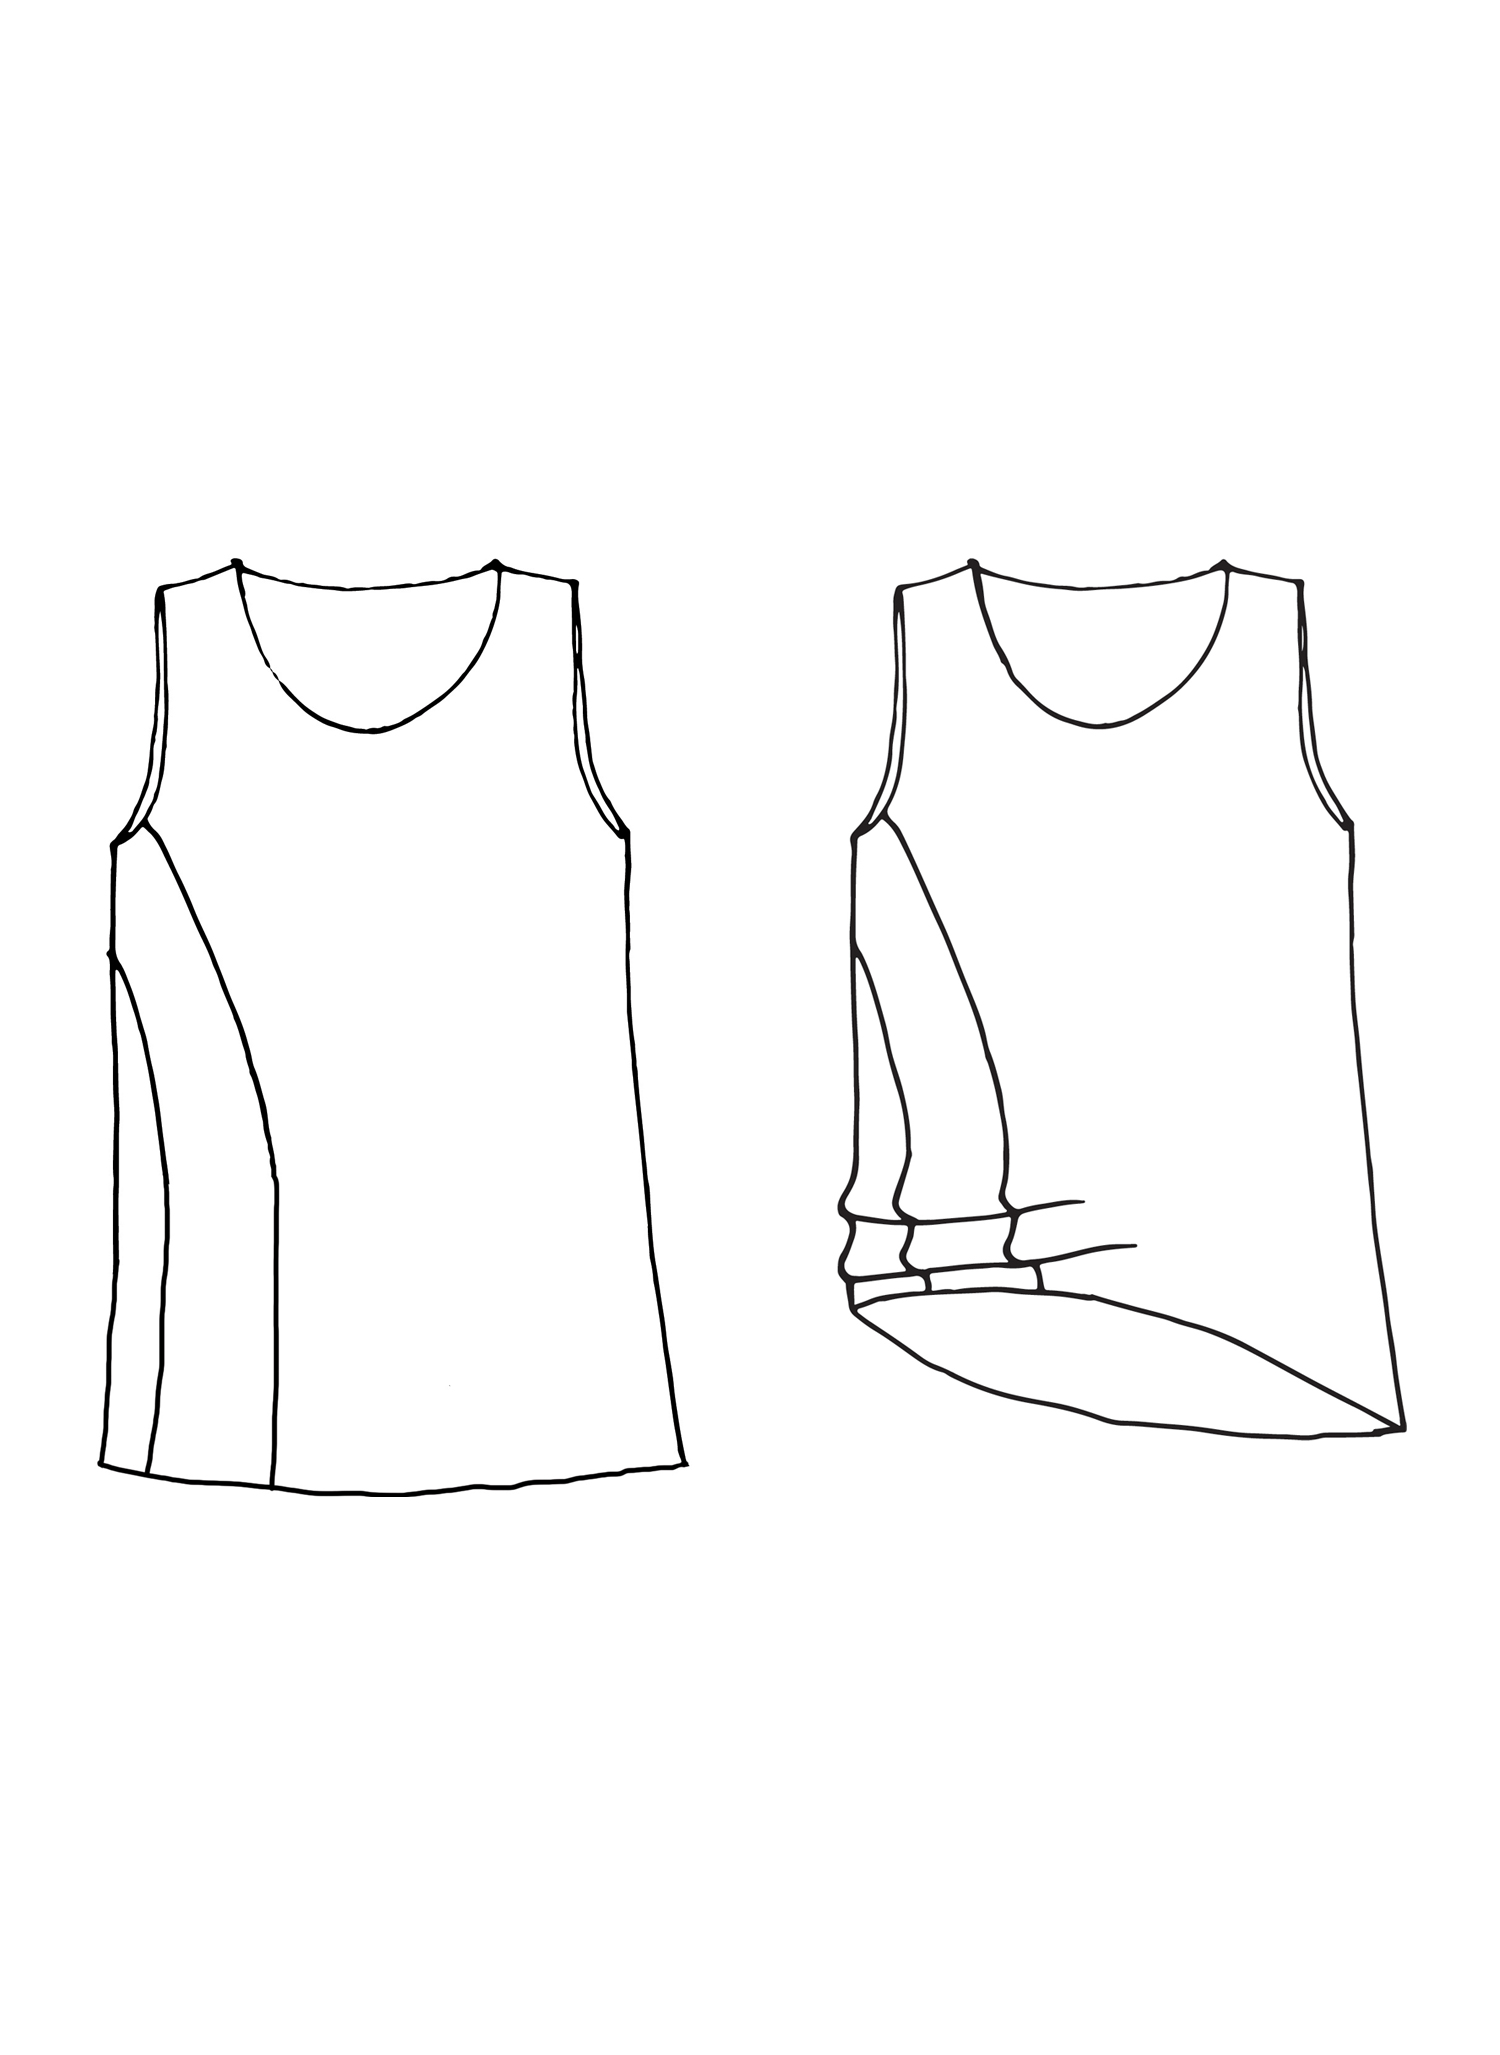 Multi-Facet Tunic sketch image